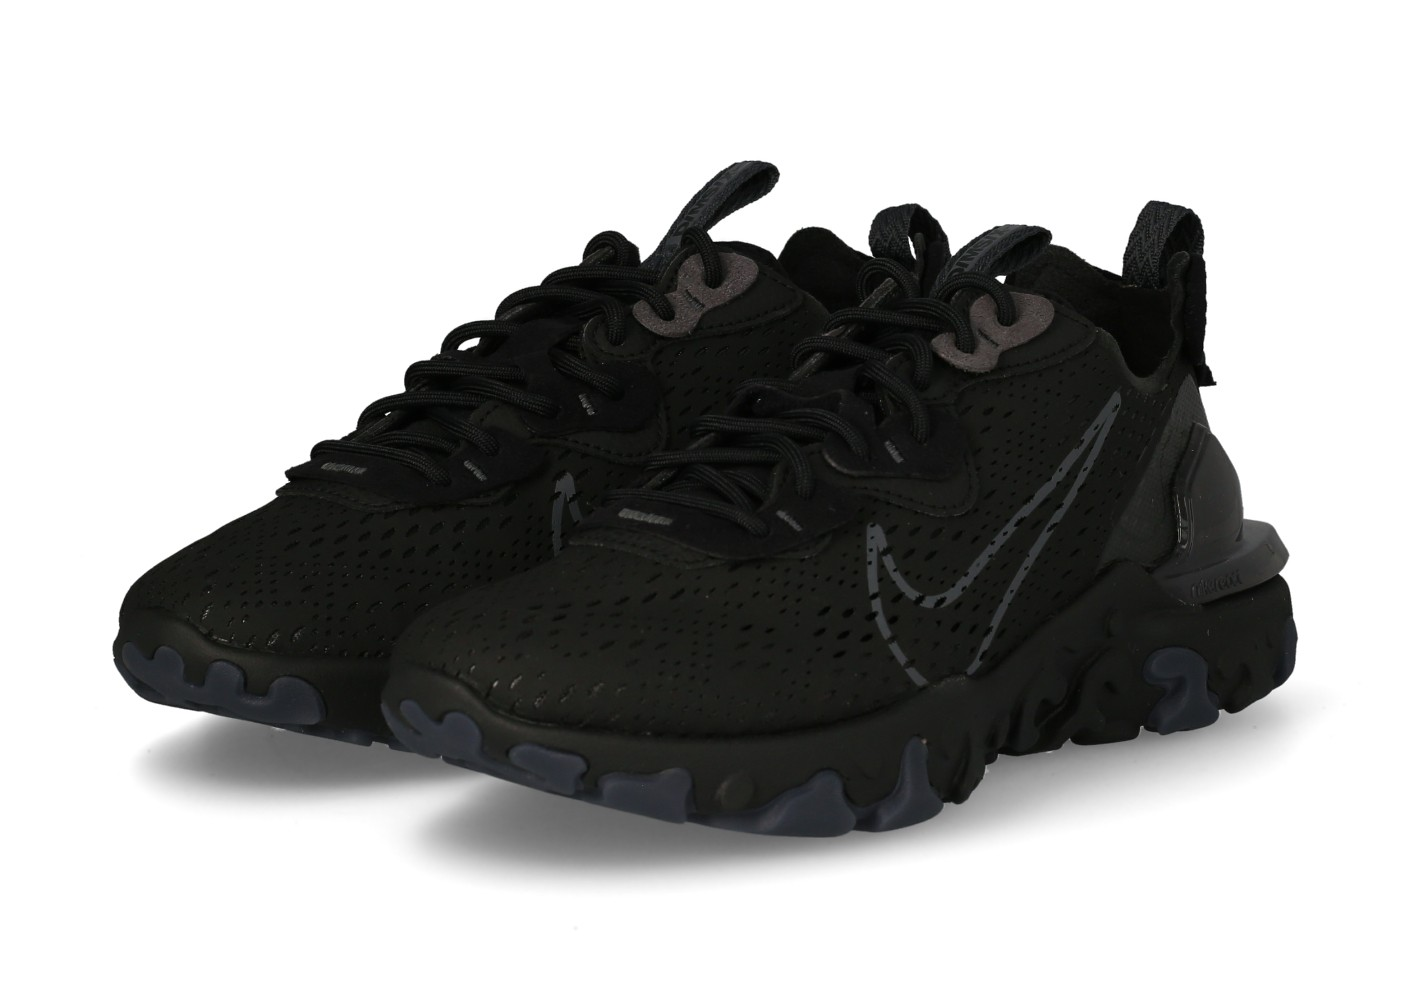 Nike React Vision noir - Chaussures Baskets homme - 7south